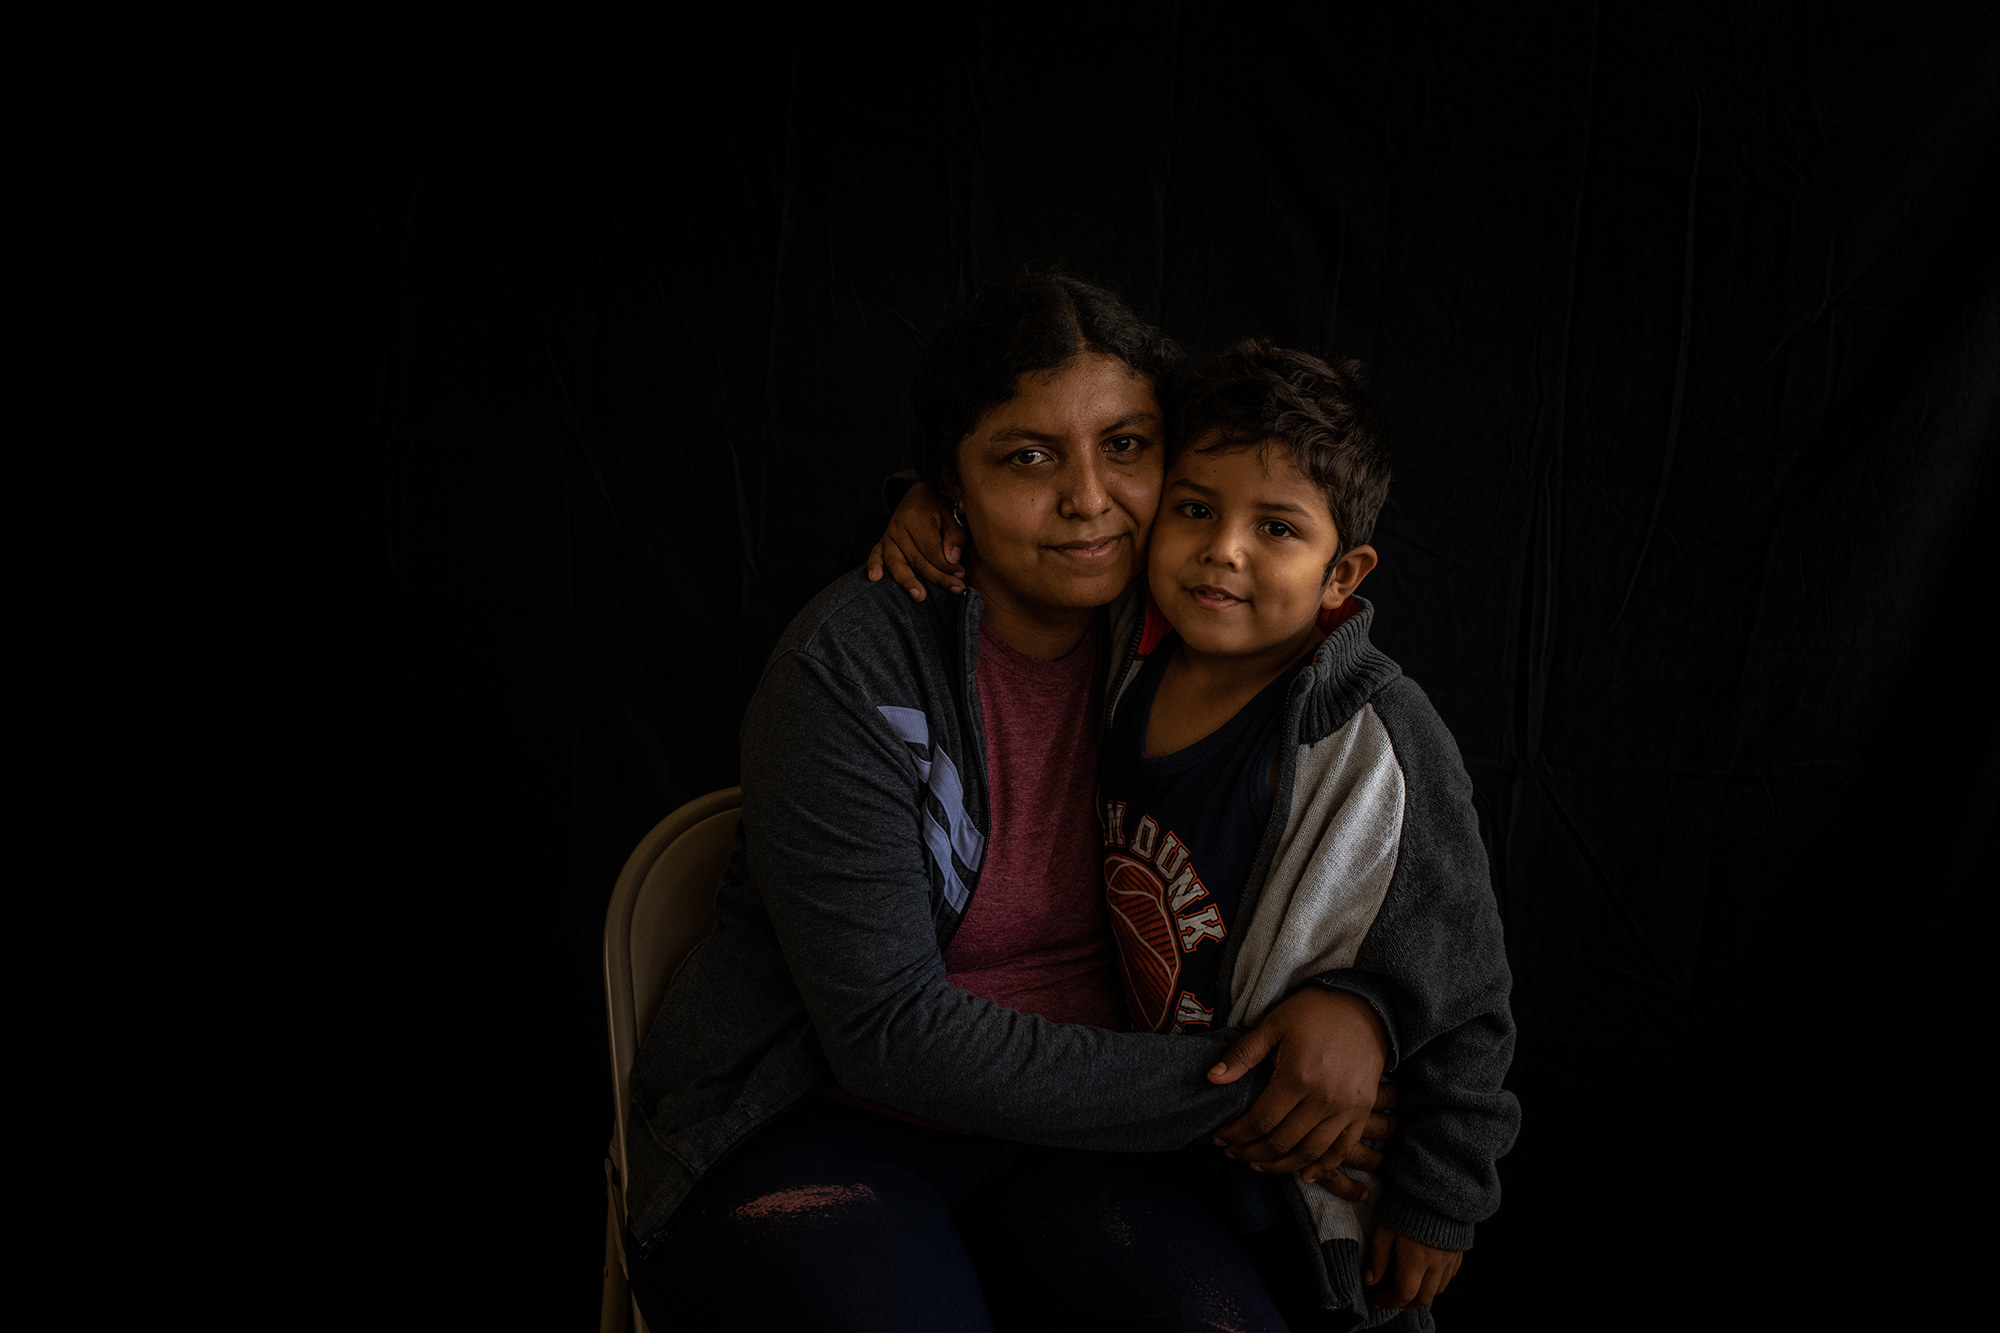 A migrant mother and son sit on a folding chair on a black background, embracing and looking at the camera